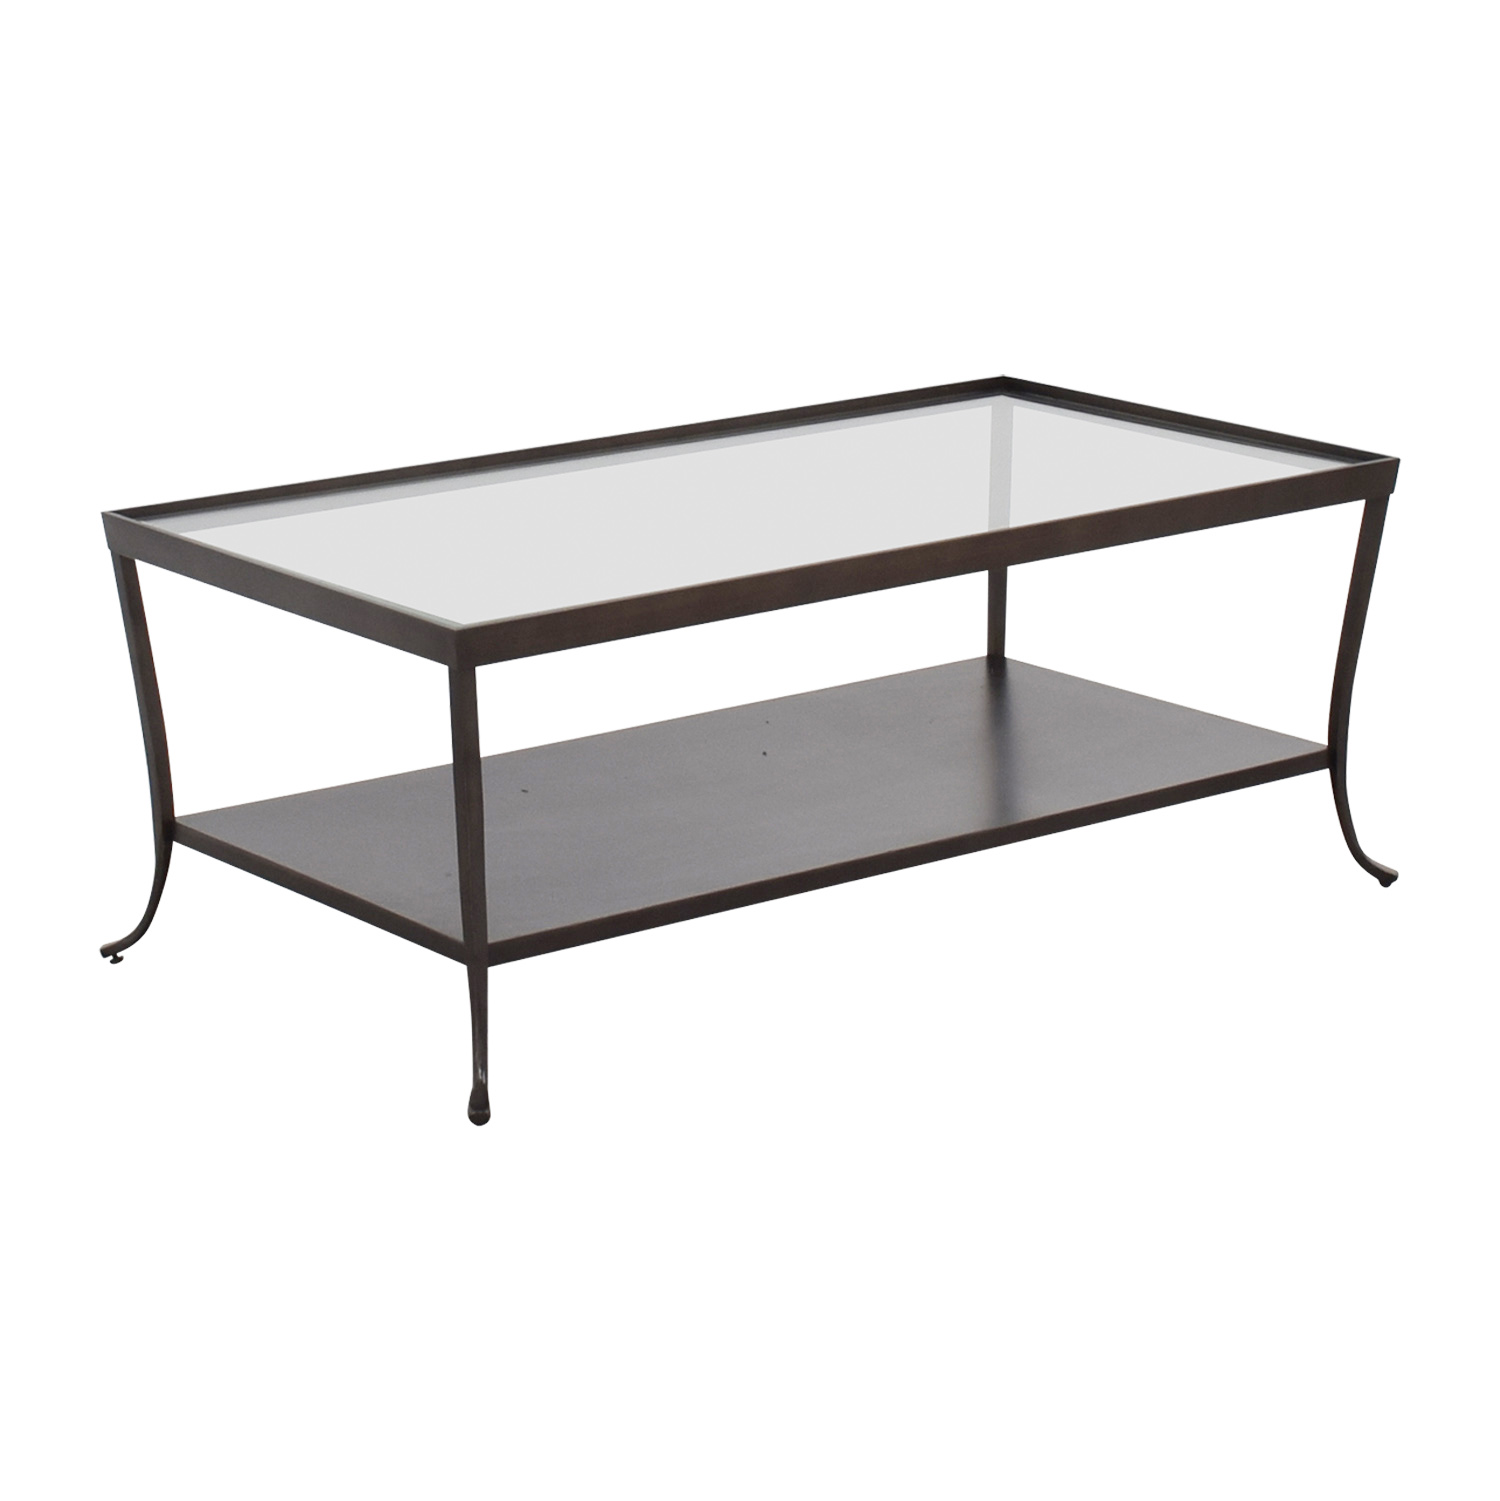 66 off glass top coffee table with metal base tables Metal glass top coffee table